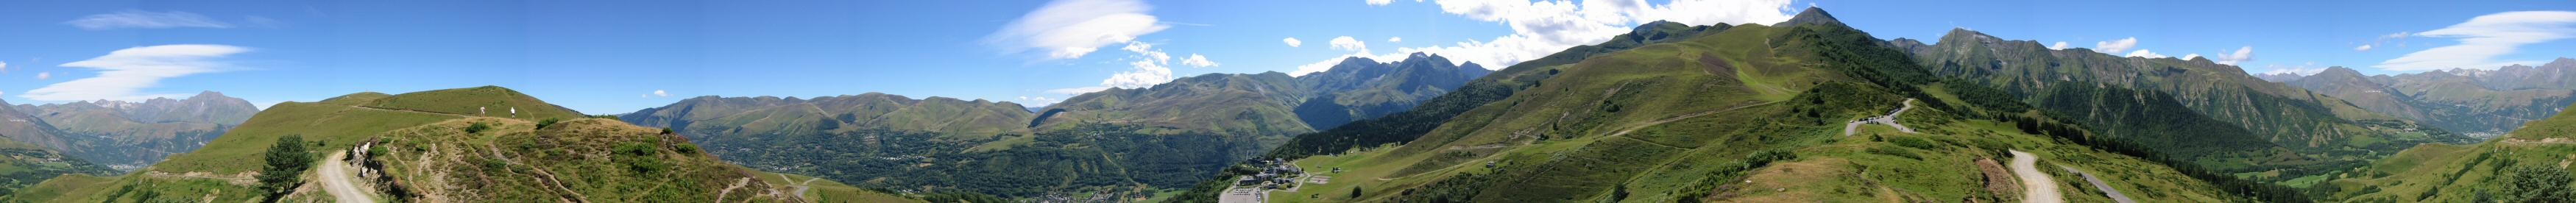 360 panorama from the Col d'Azet